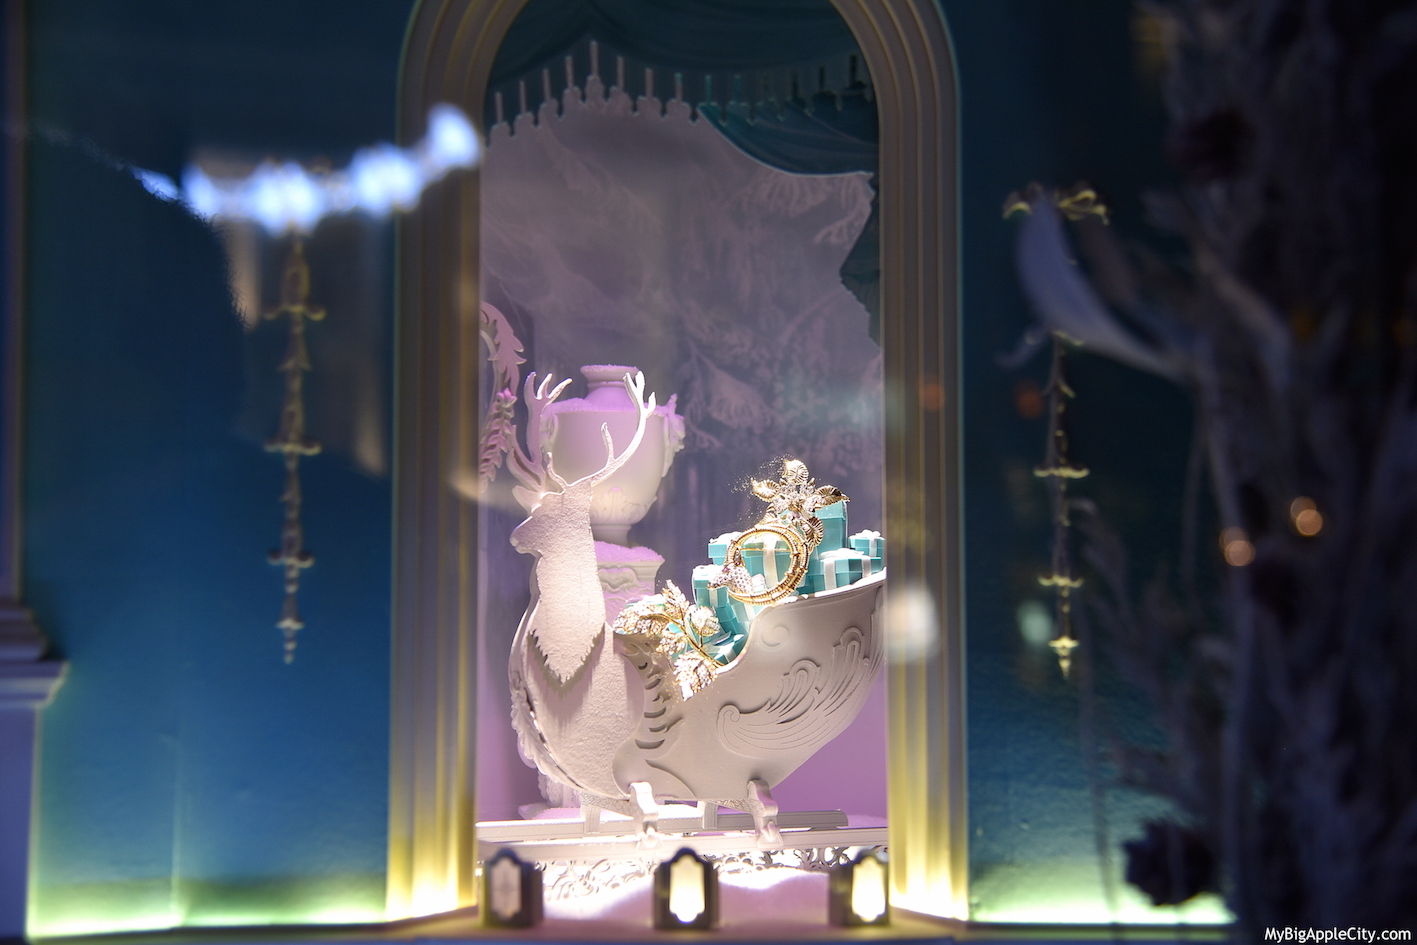 Tiffanyandco-Holiday-window-new-york-travelblogger-mybigapplecity